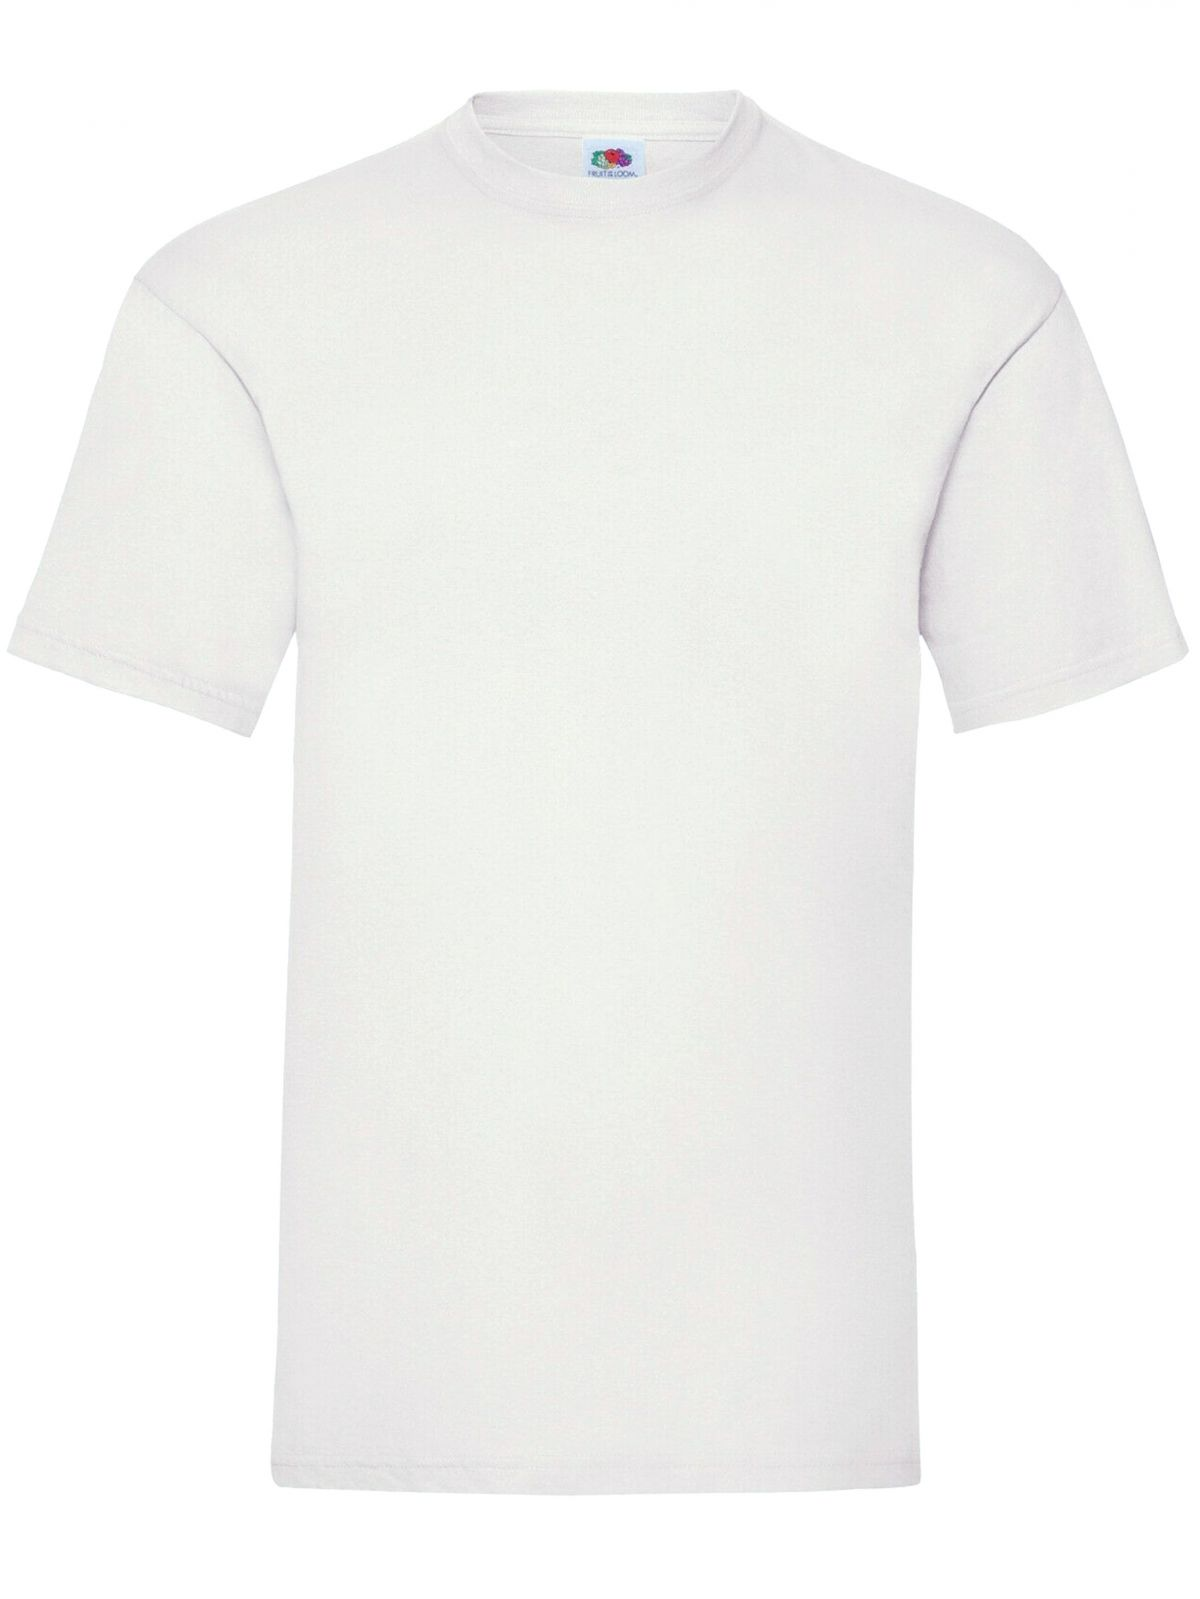 Clearance | Mens Short Sleeve Basic Fruit of the Loom T-Shirt | 7 Colours Available